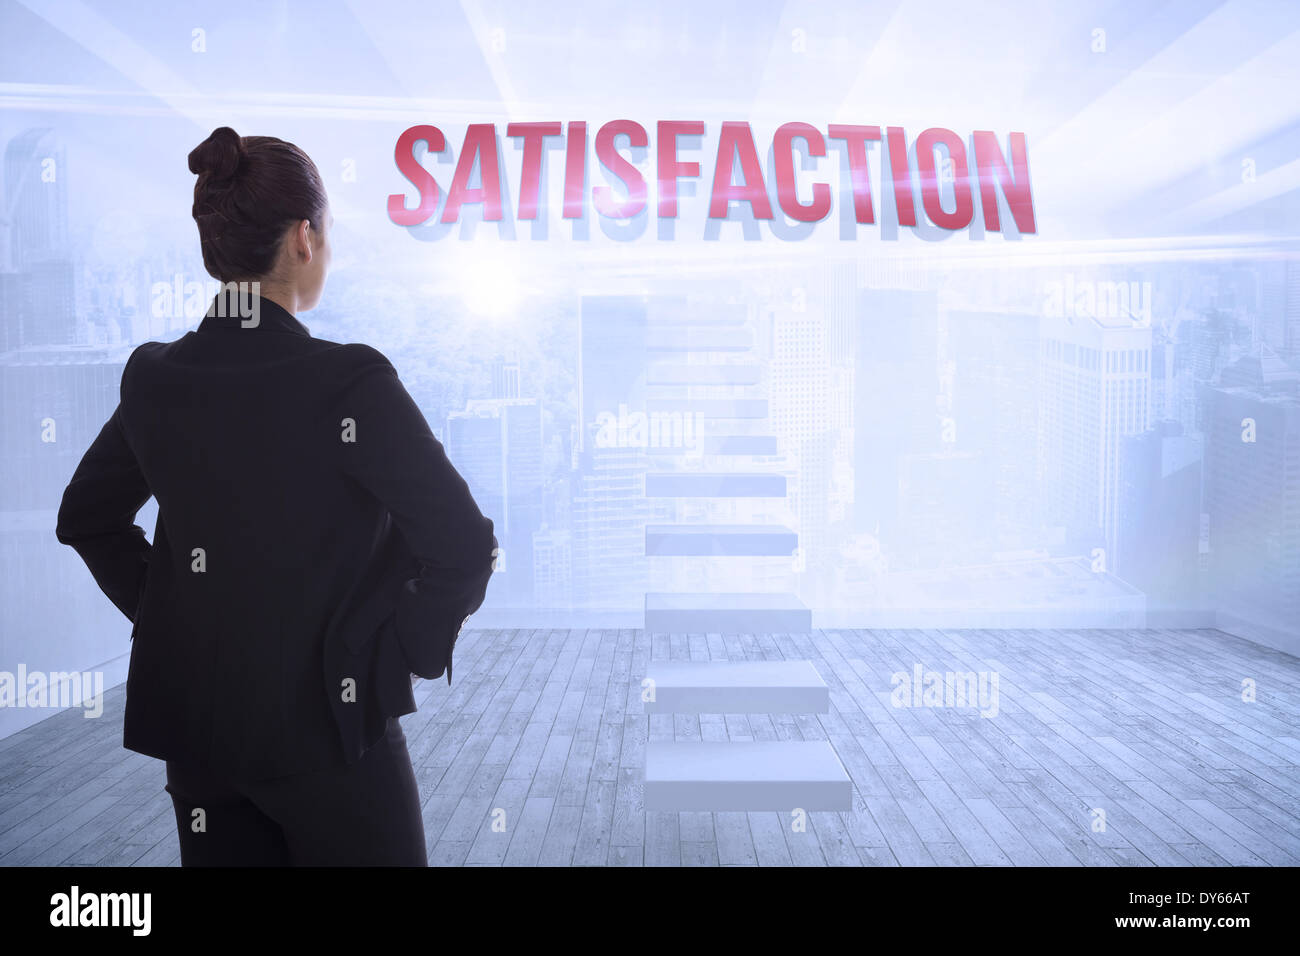 Satisfaction against city scene in a room - Stock Image